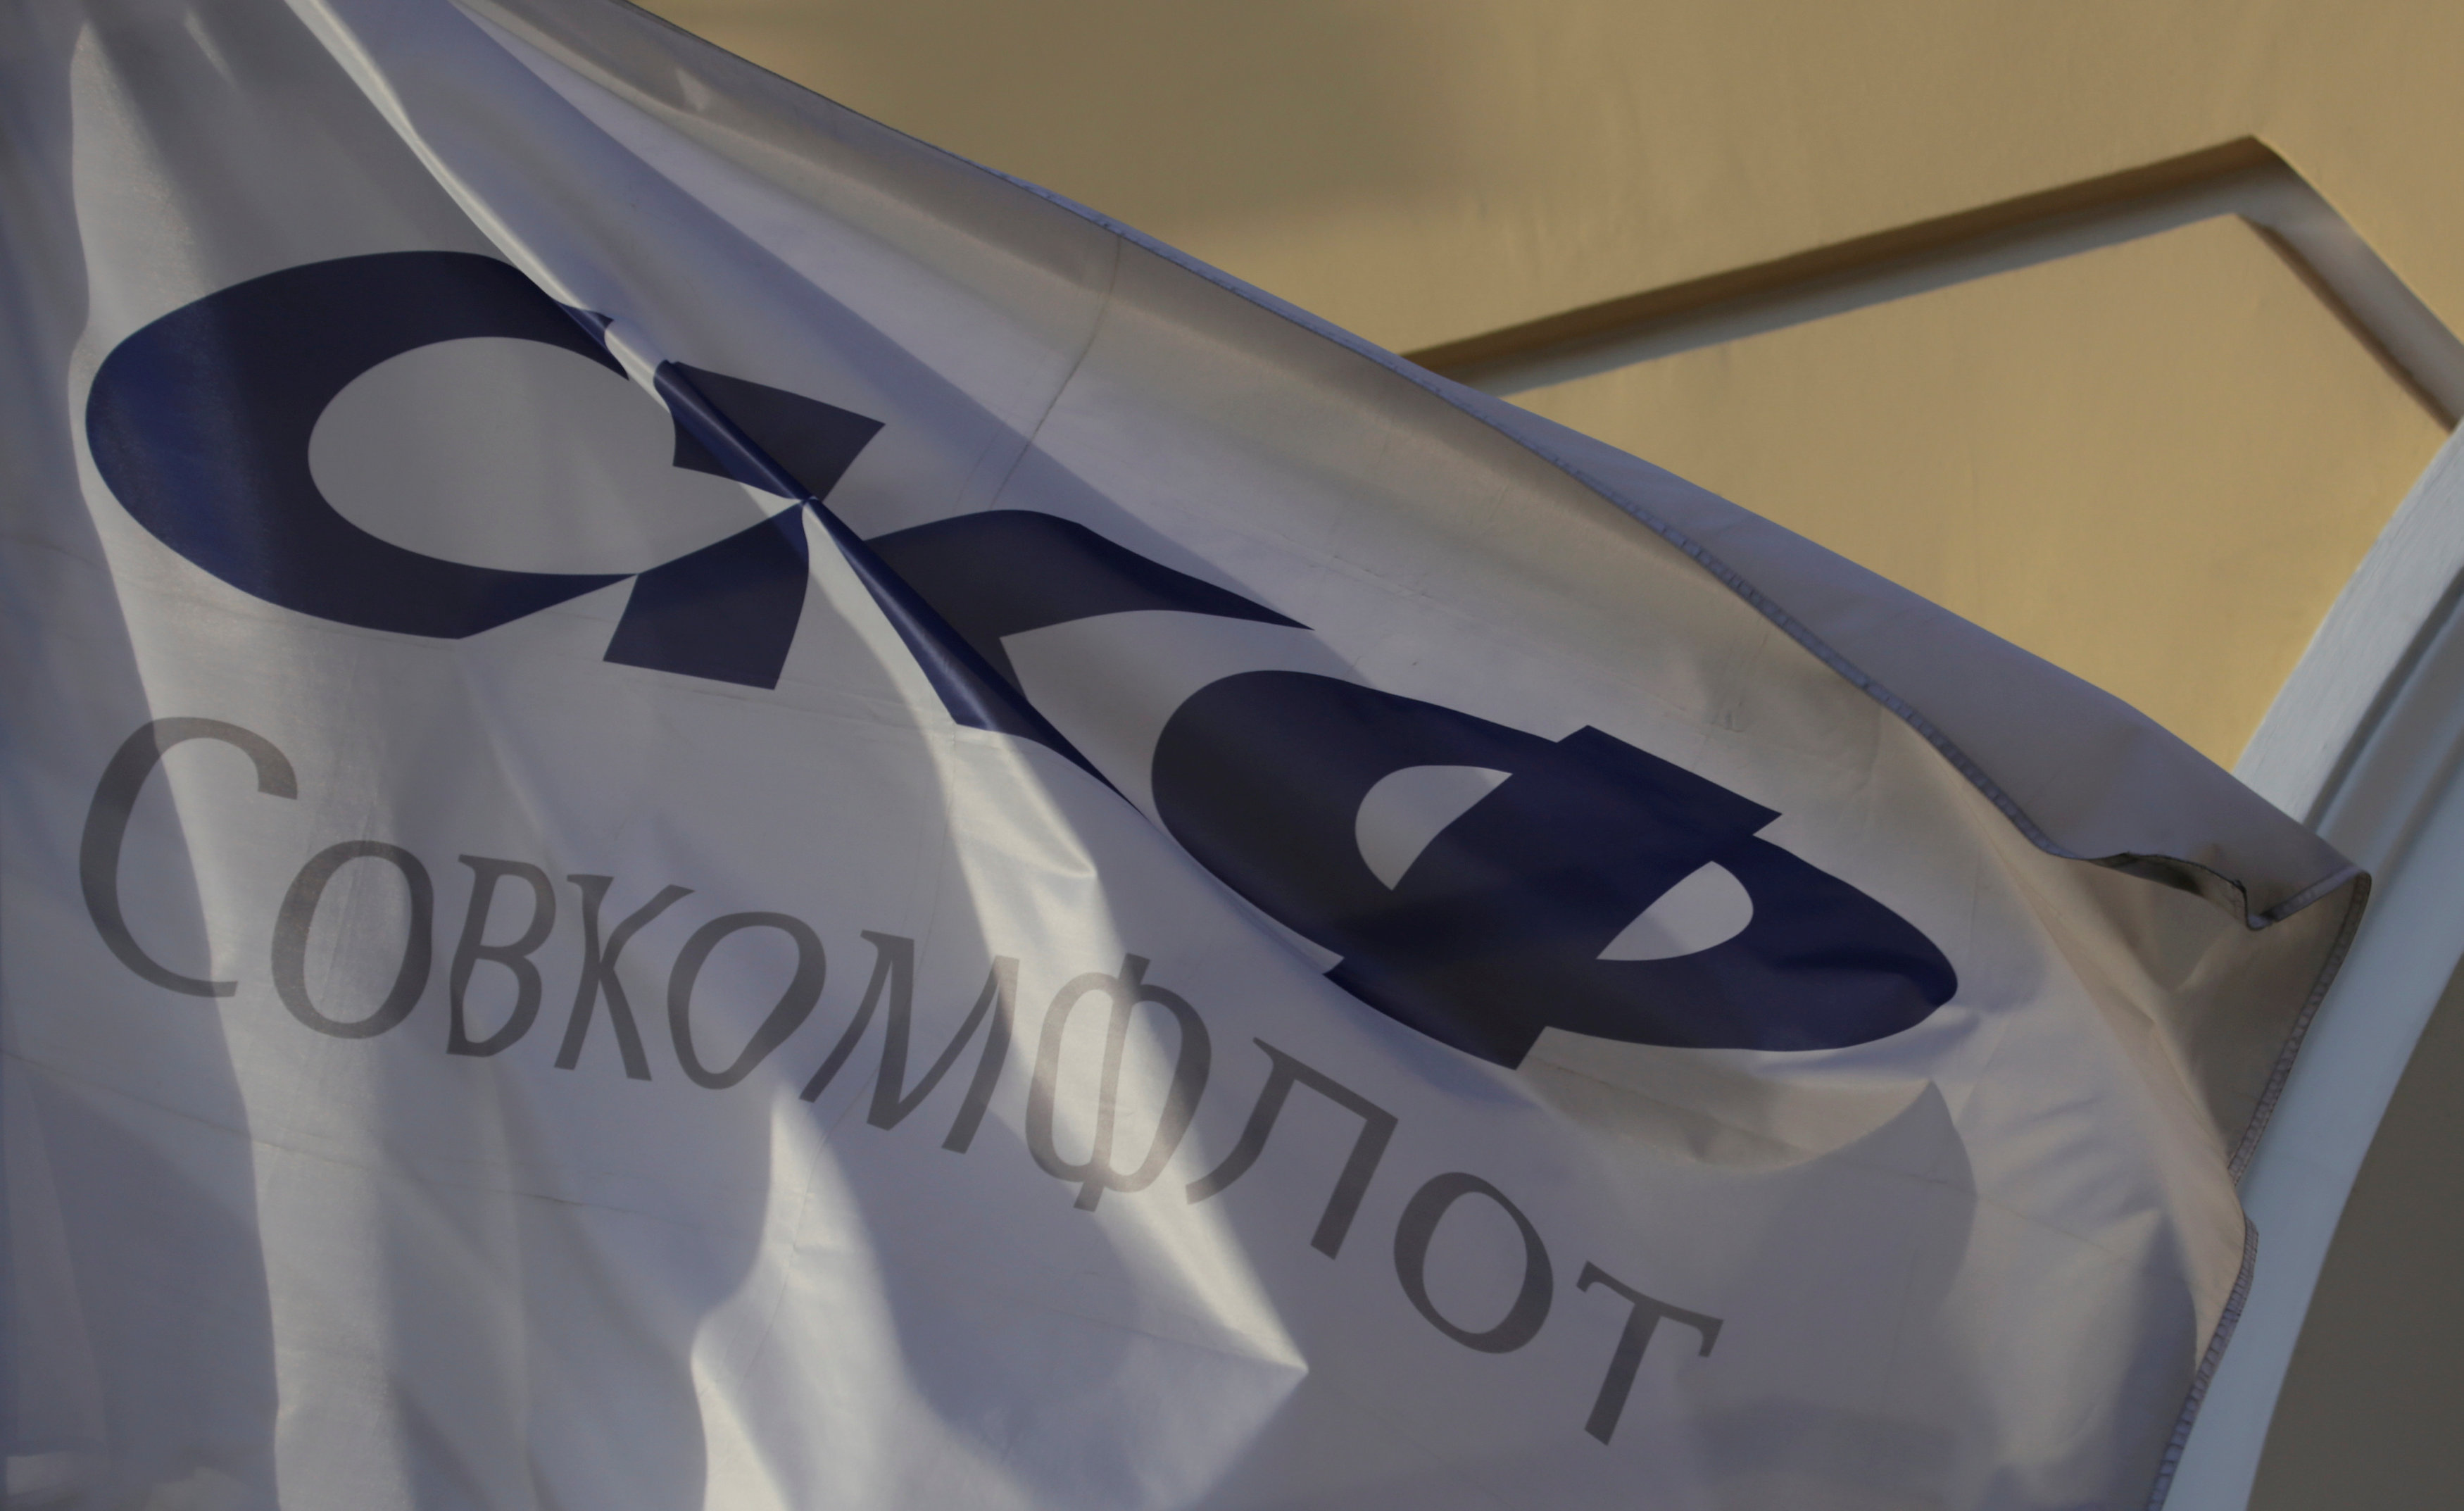 Russia's Sovcomflot says Arctic oil and gas shipments have reached new highs